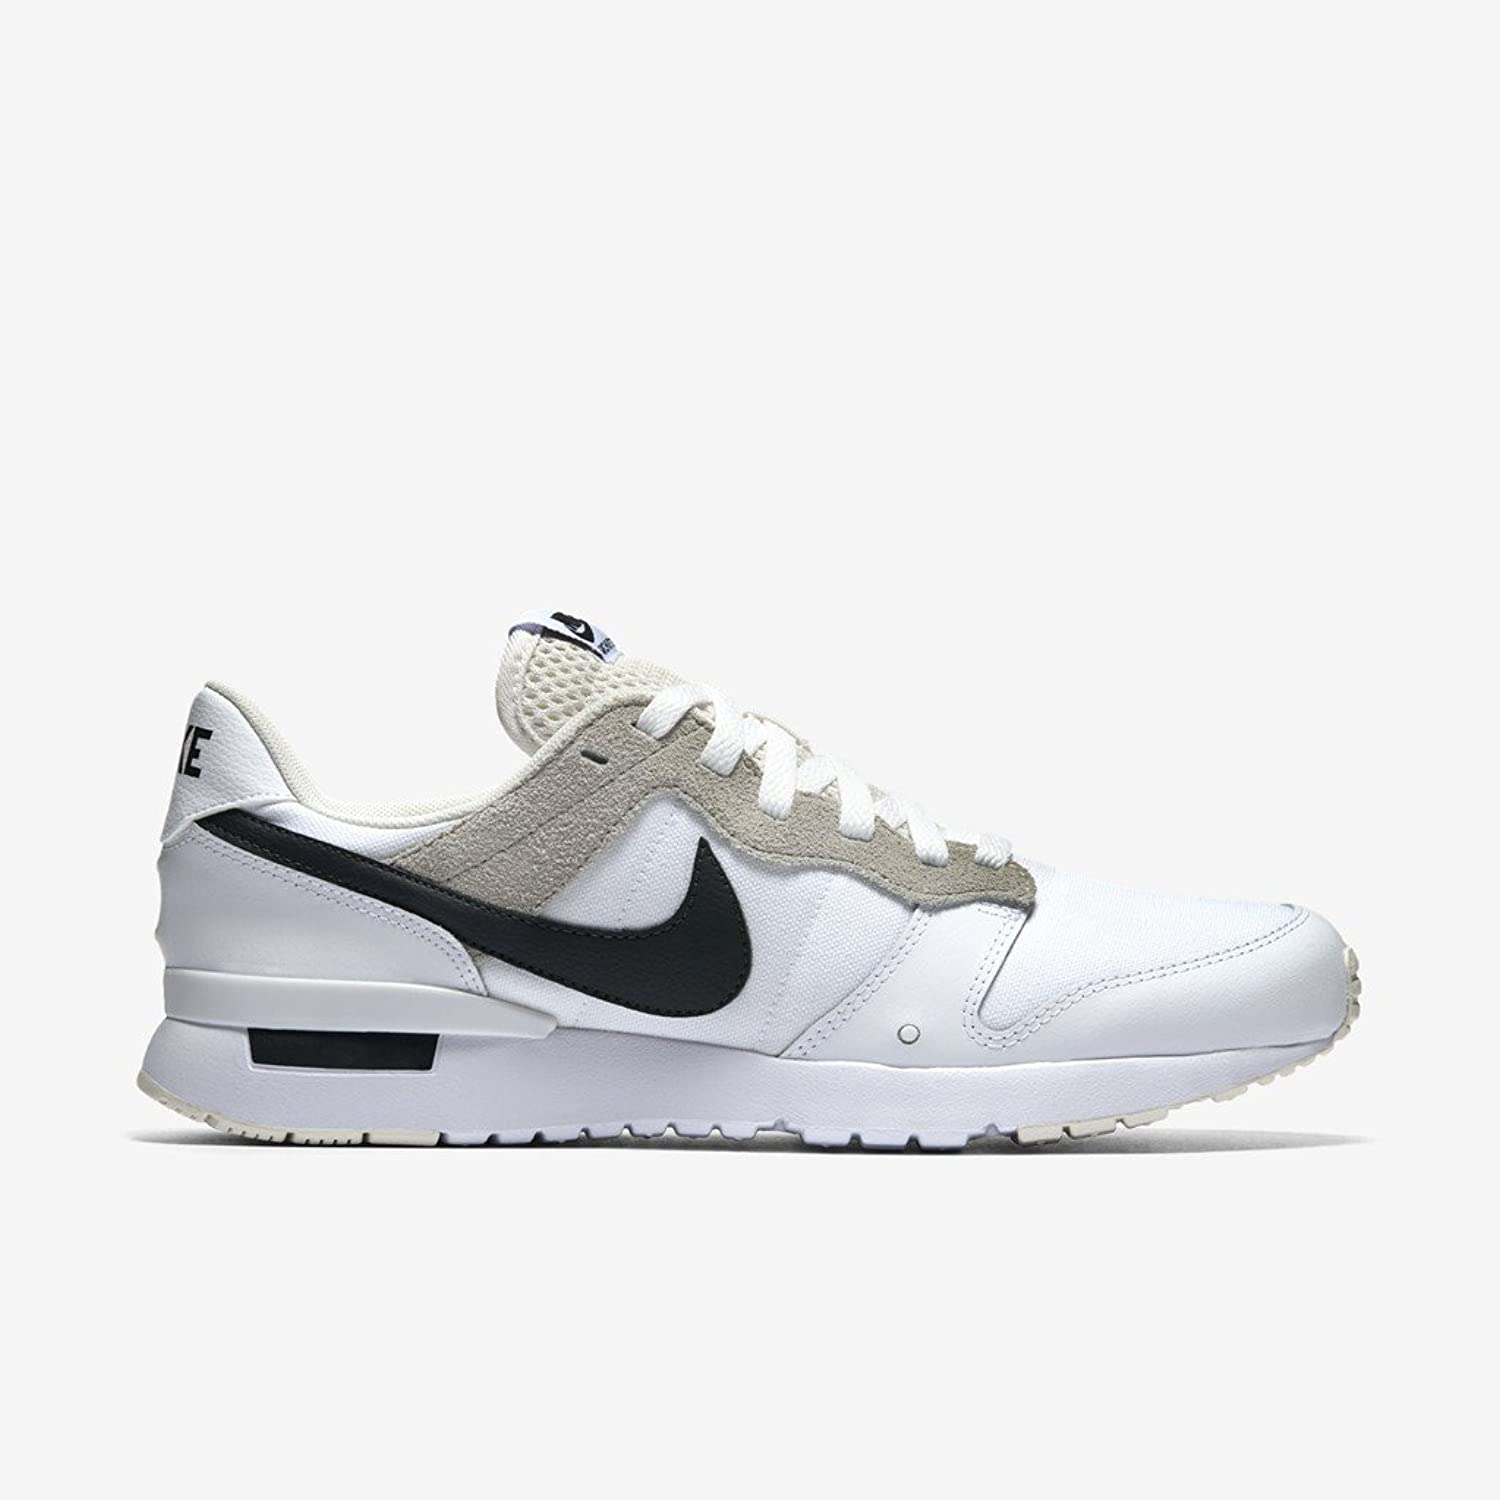 timeless design d5f34 8d613 85%OFF Nike Archive 83.M